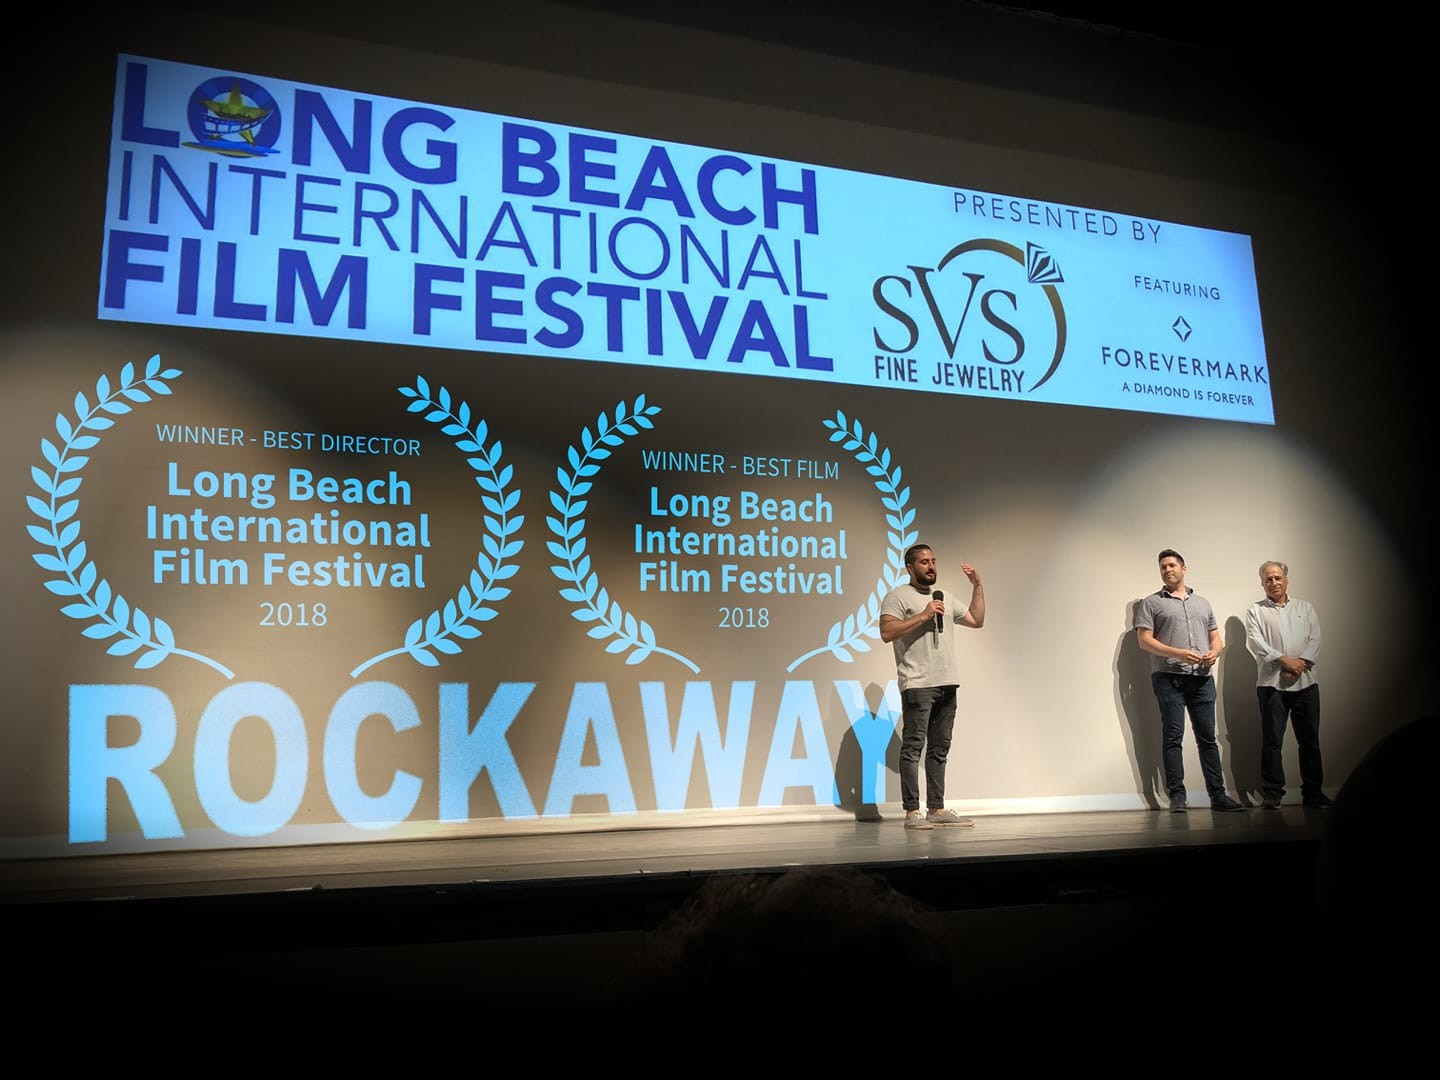 """Rockaway"" made its New York debut at the Long Beach International Film Festival with a pair of screenings over the weekend. Writer-director John J. Budion addressed the audience at the Molloy College theater after the movie won Best Feature Film and Budion was named Best Director on Sunday."